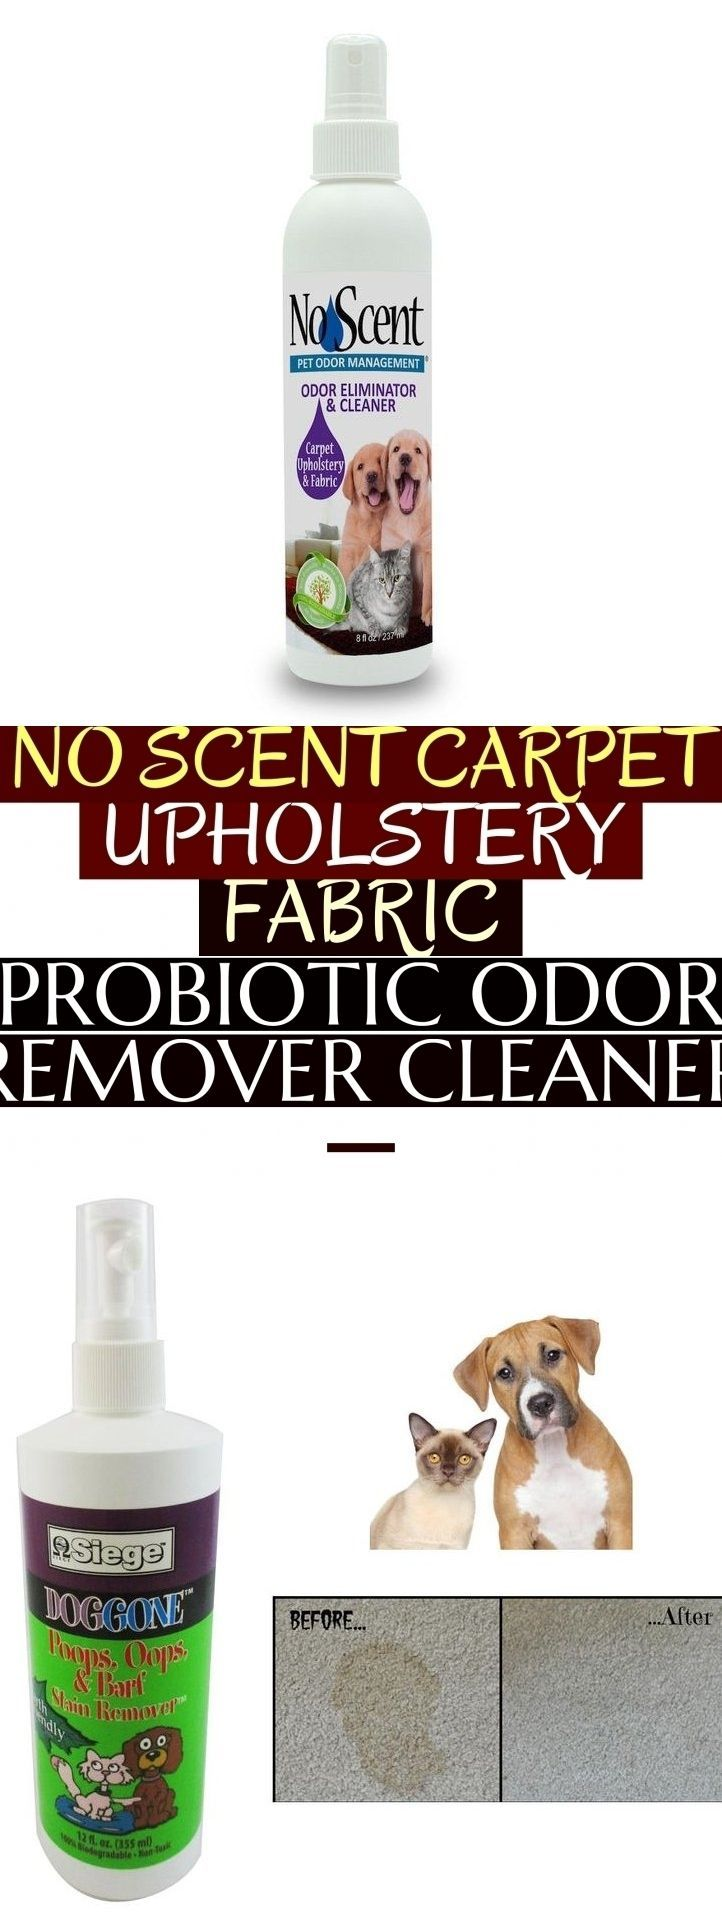 No Scent Carpet Upholstery Fabric Probiotic Odor Remover Cleaner   No Scent Carpet Upholstery Fabric Probiotic Odor Remover Cleaner   no scent carp